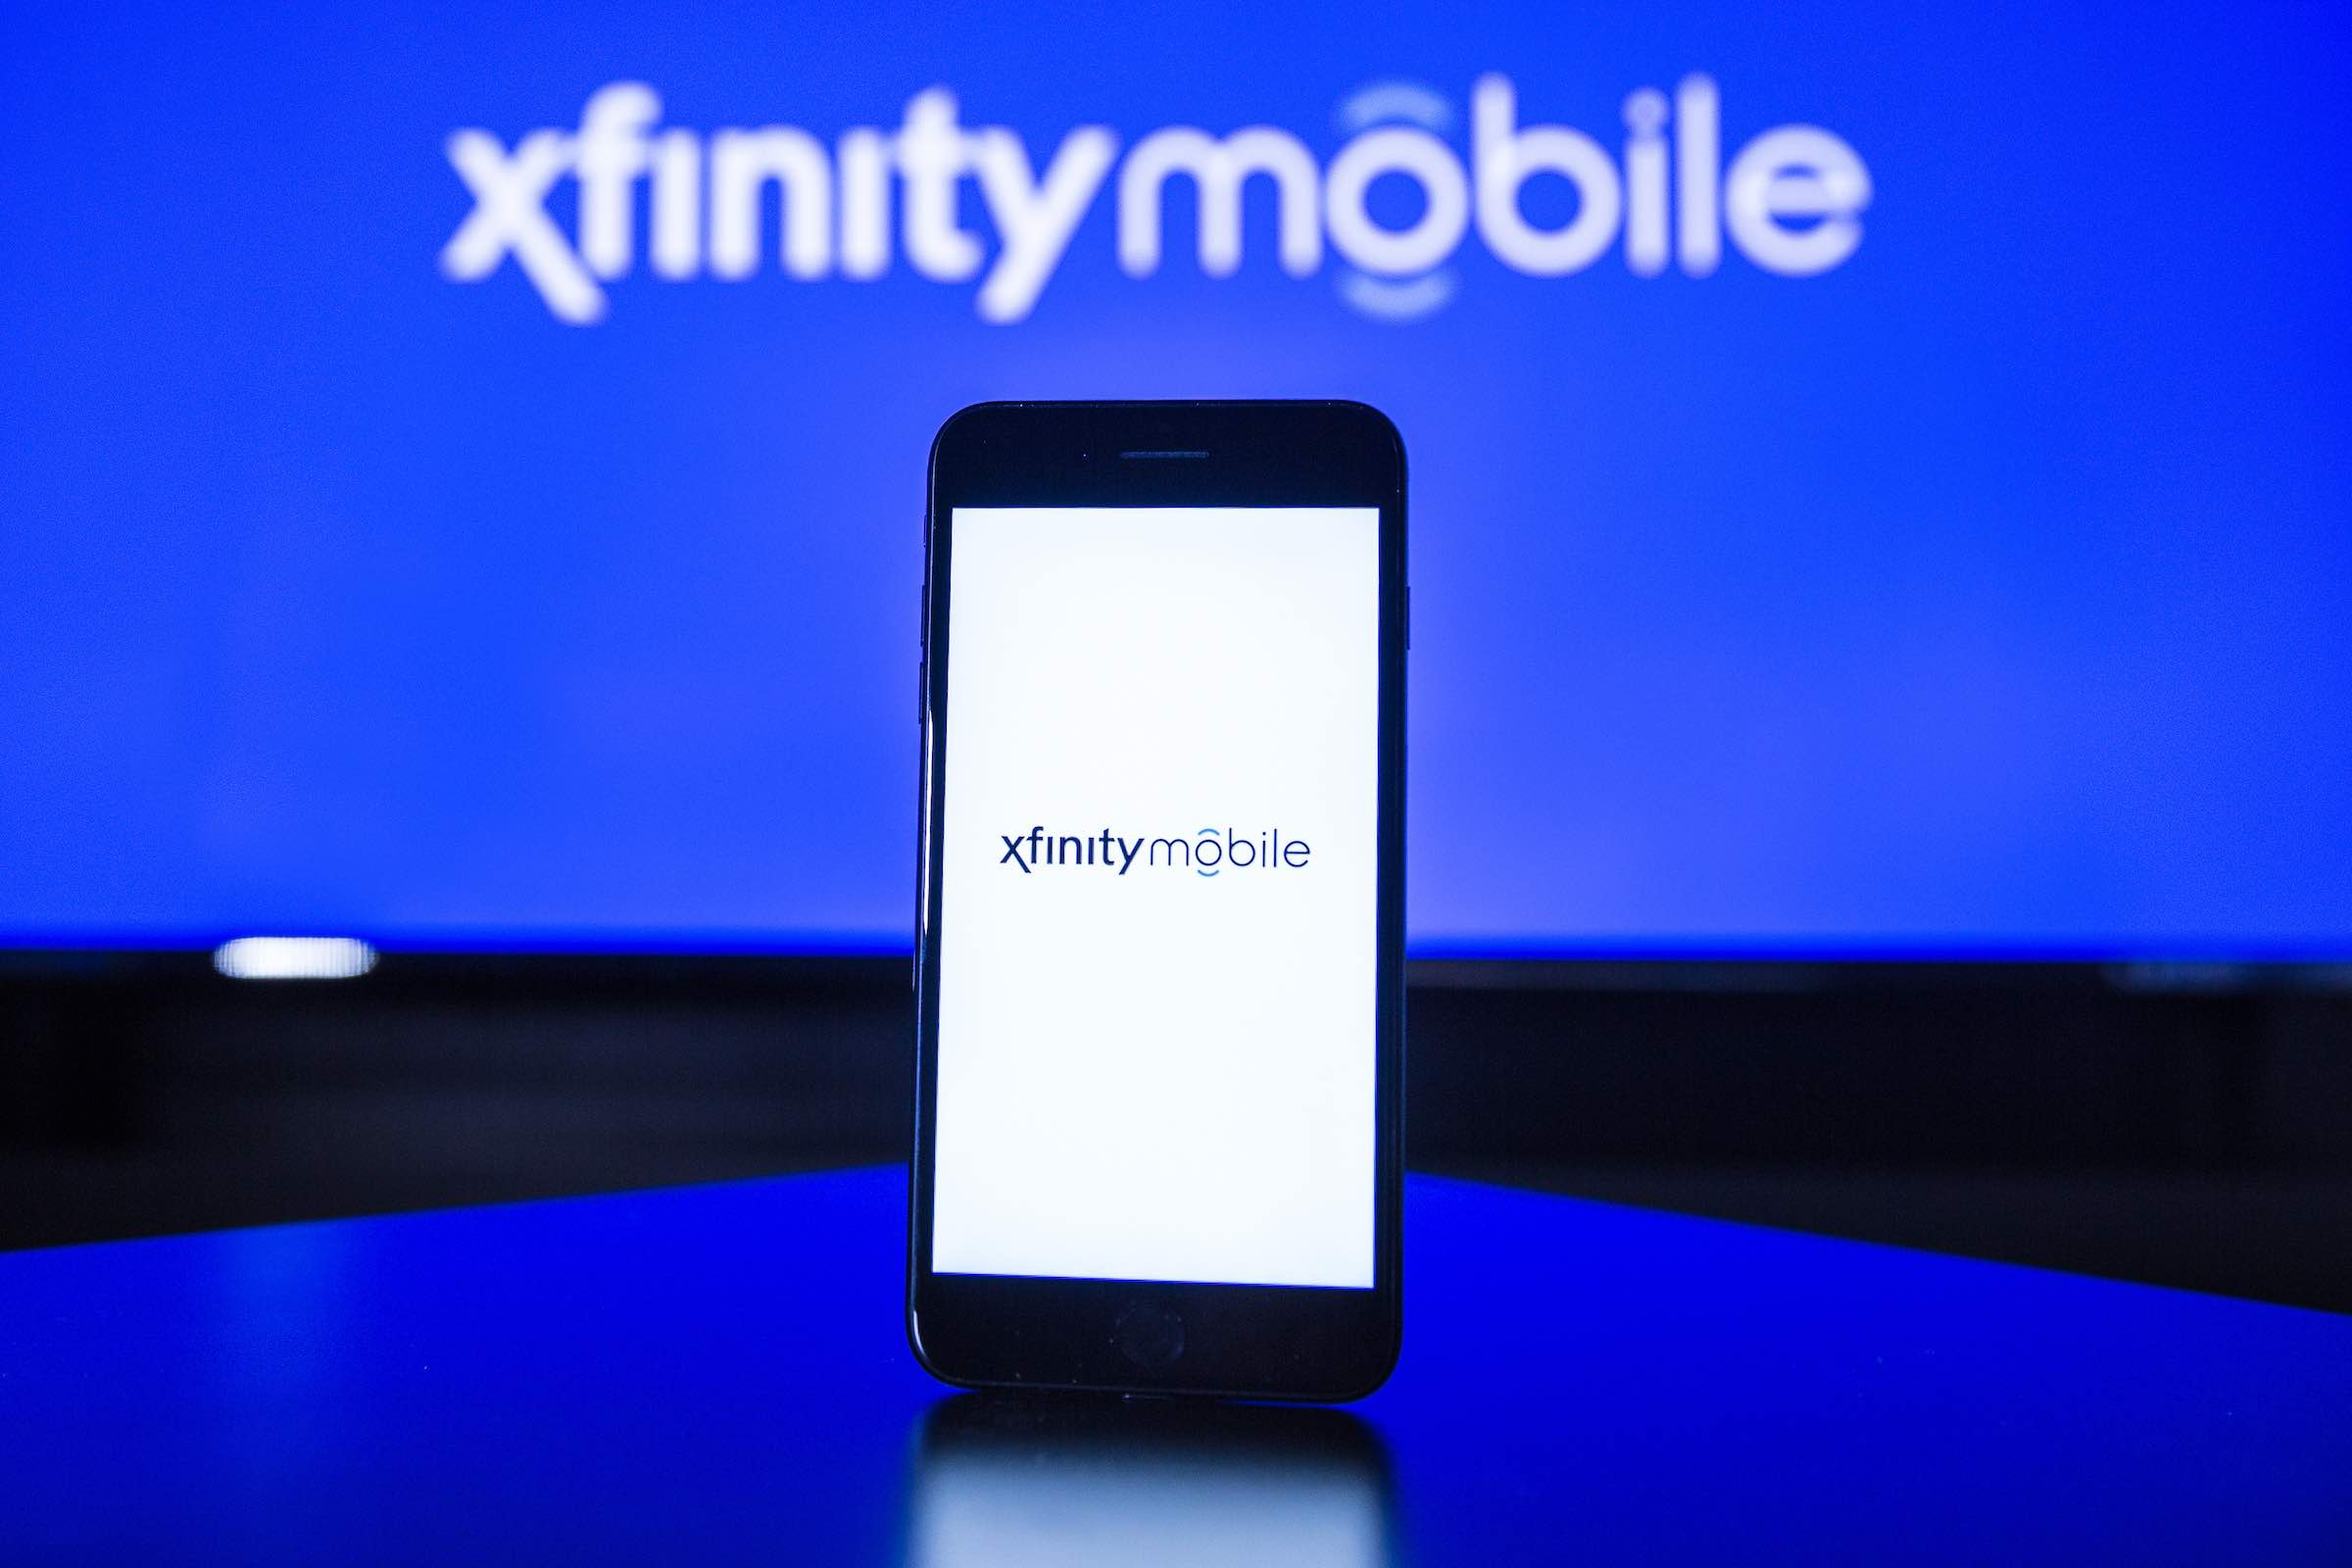 Xfinity mobile app, with information on data usage.